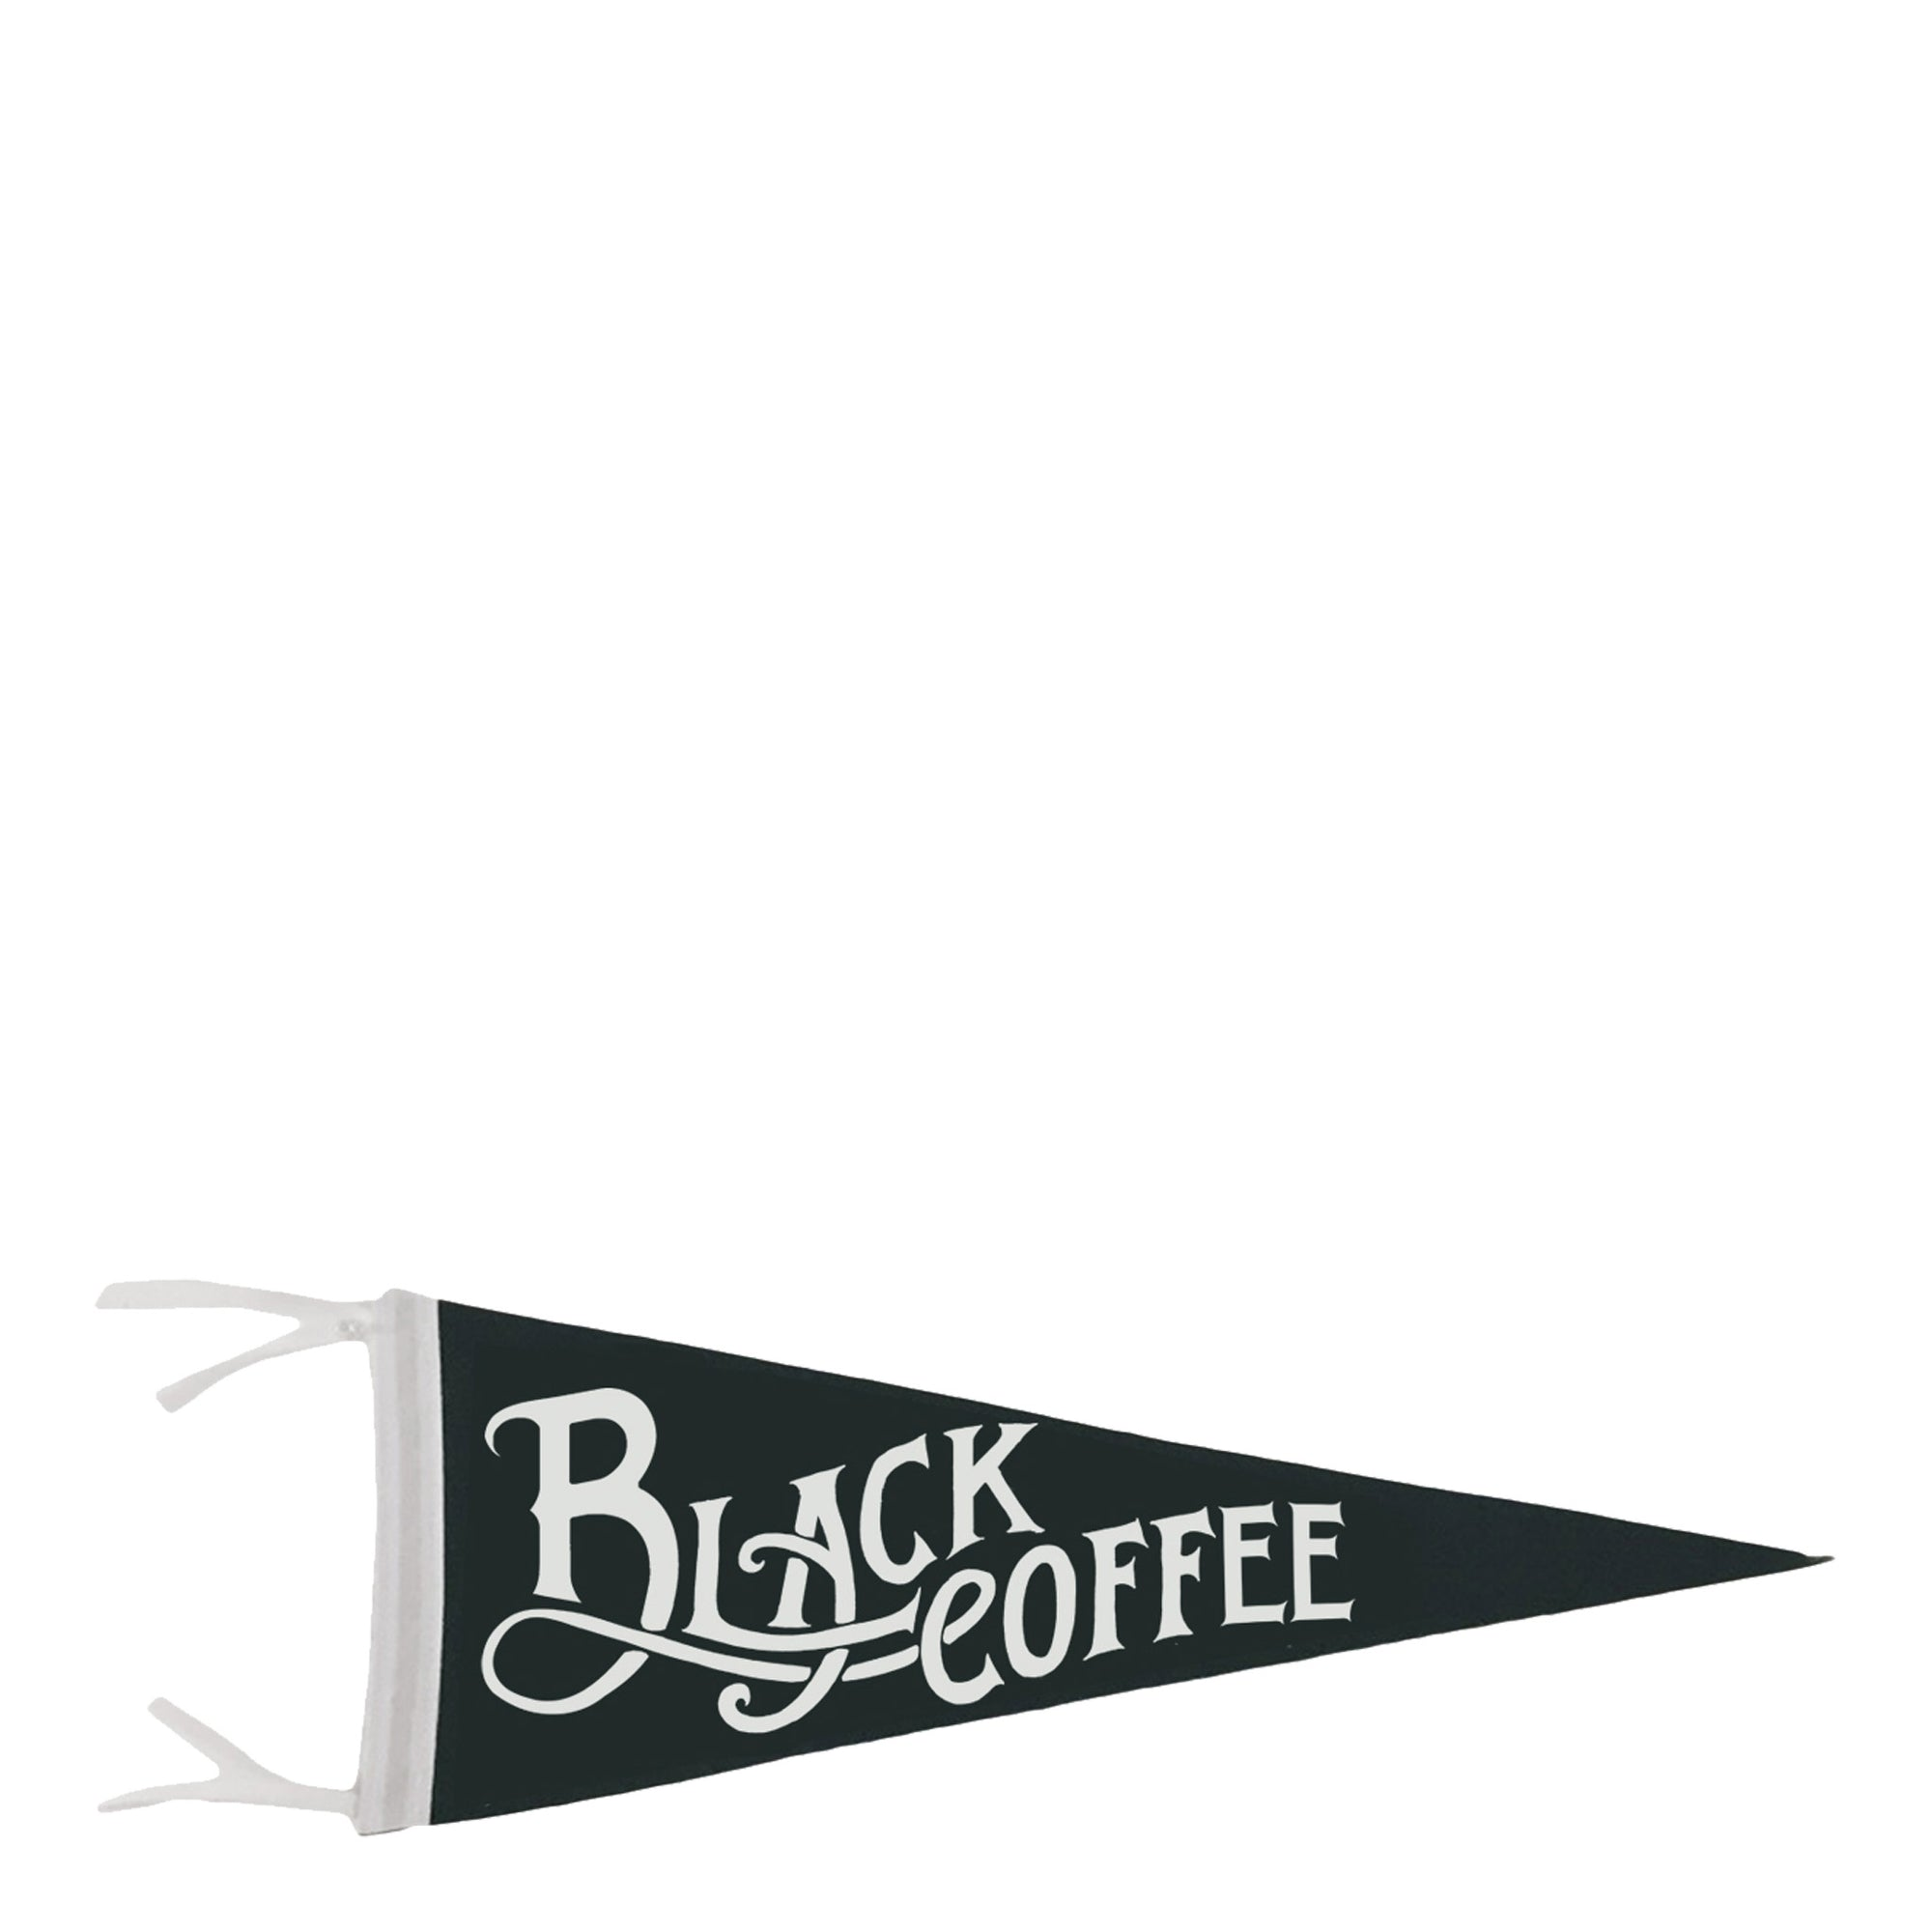 Pennant - Black Coffee - Dept of Brewology - Espresso Gear